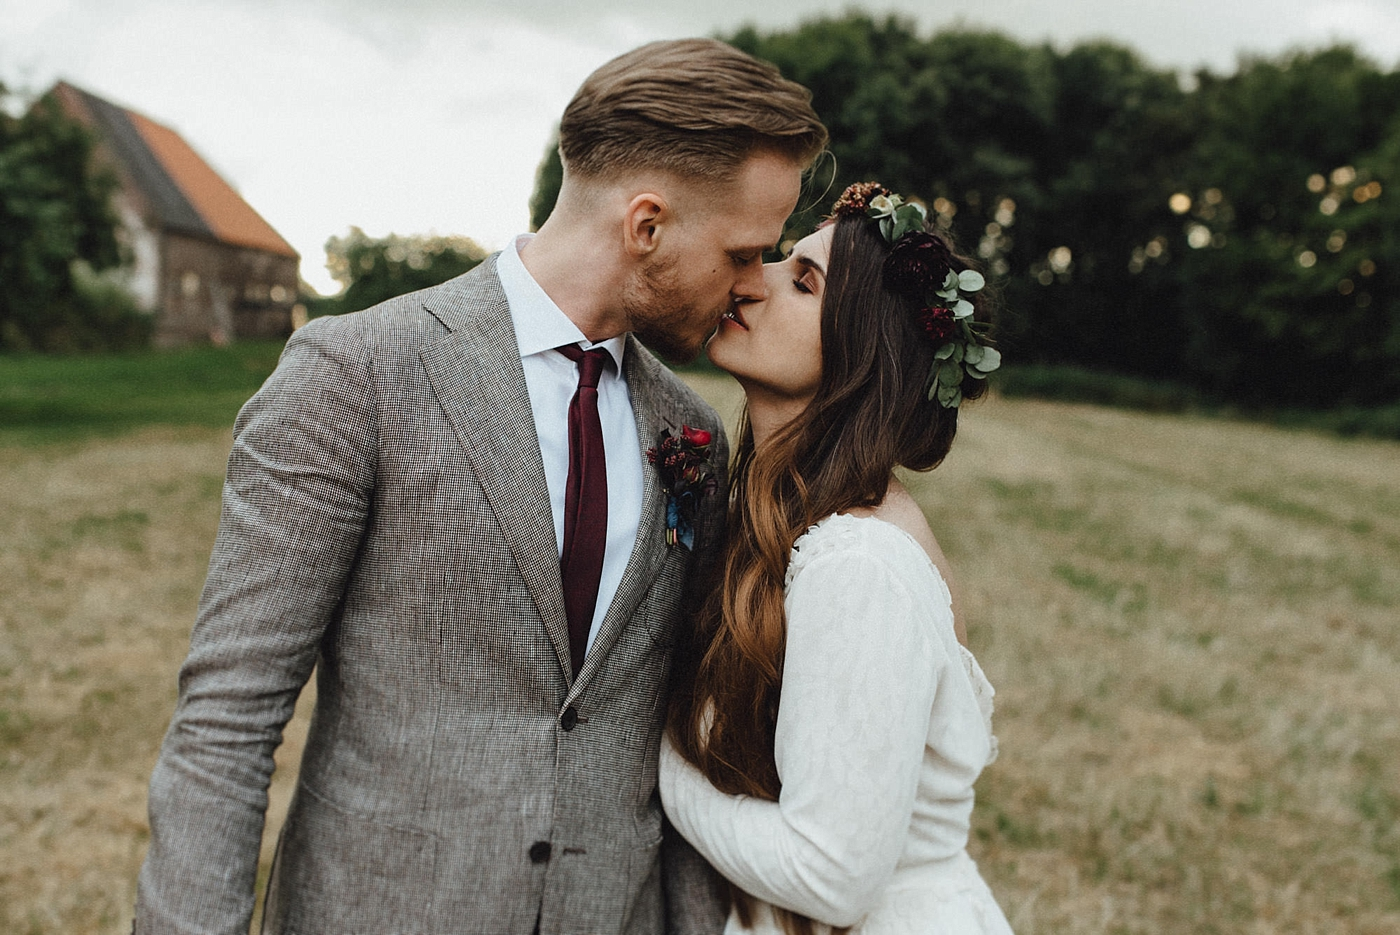 urban-elopement-wedding-229 Merve & Nils emotionales Elopement - Wedding Wesel & Schottlandurban elopement wedding 229 1